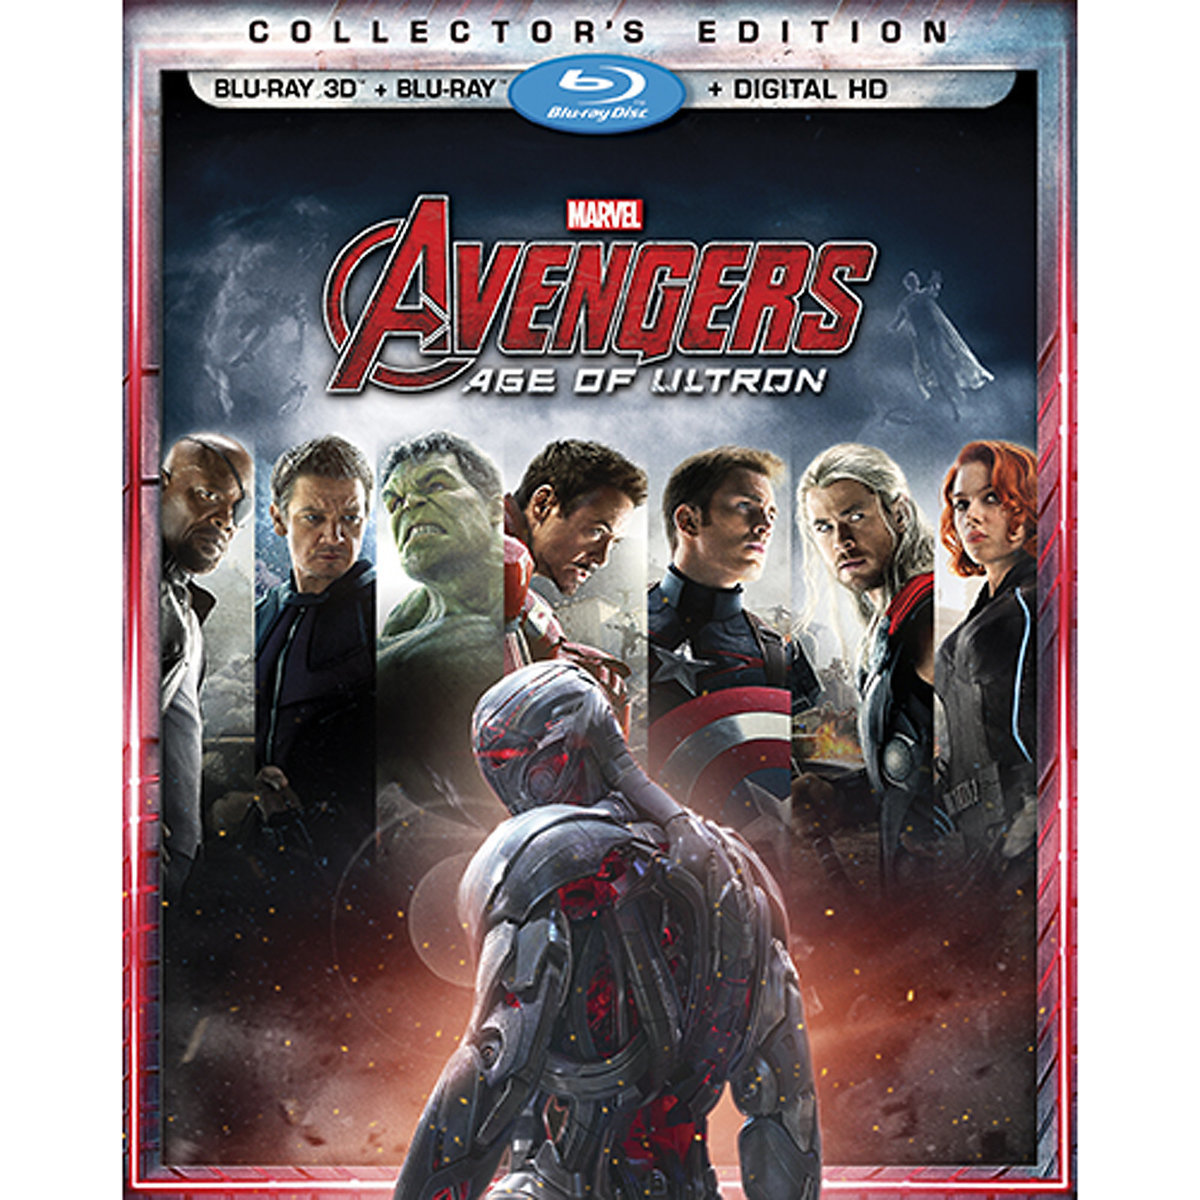 Avengers: Age of Ultron (Collector's Edition) (Blu-ray 3D + Blu-ray + Digital HD)